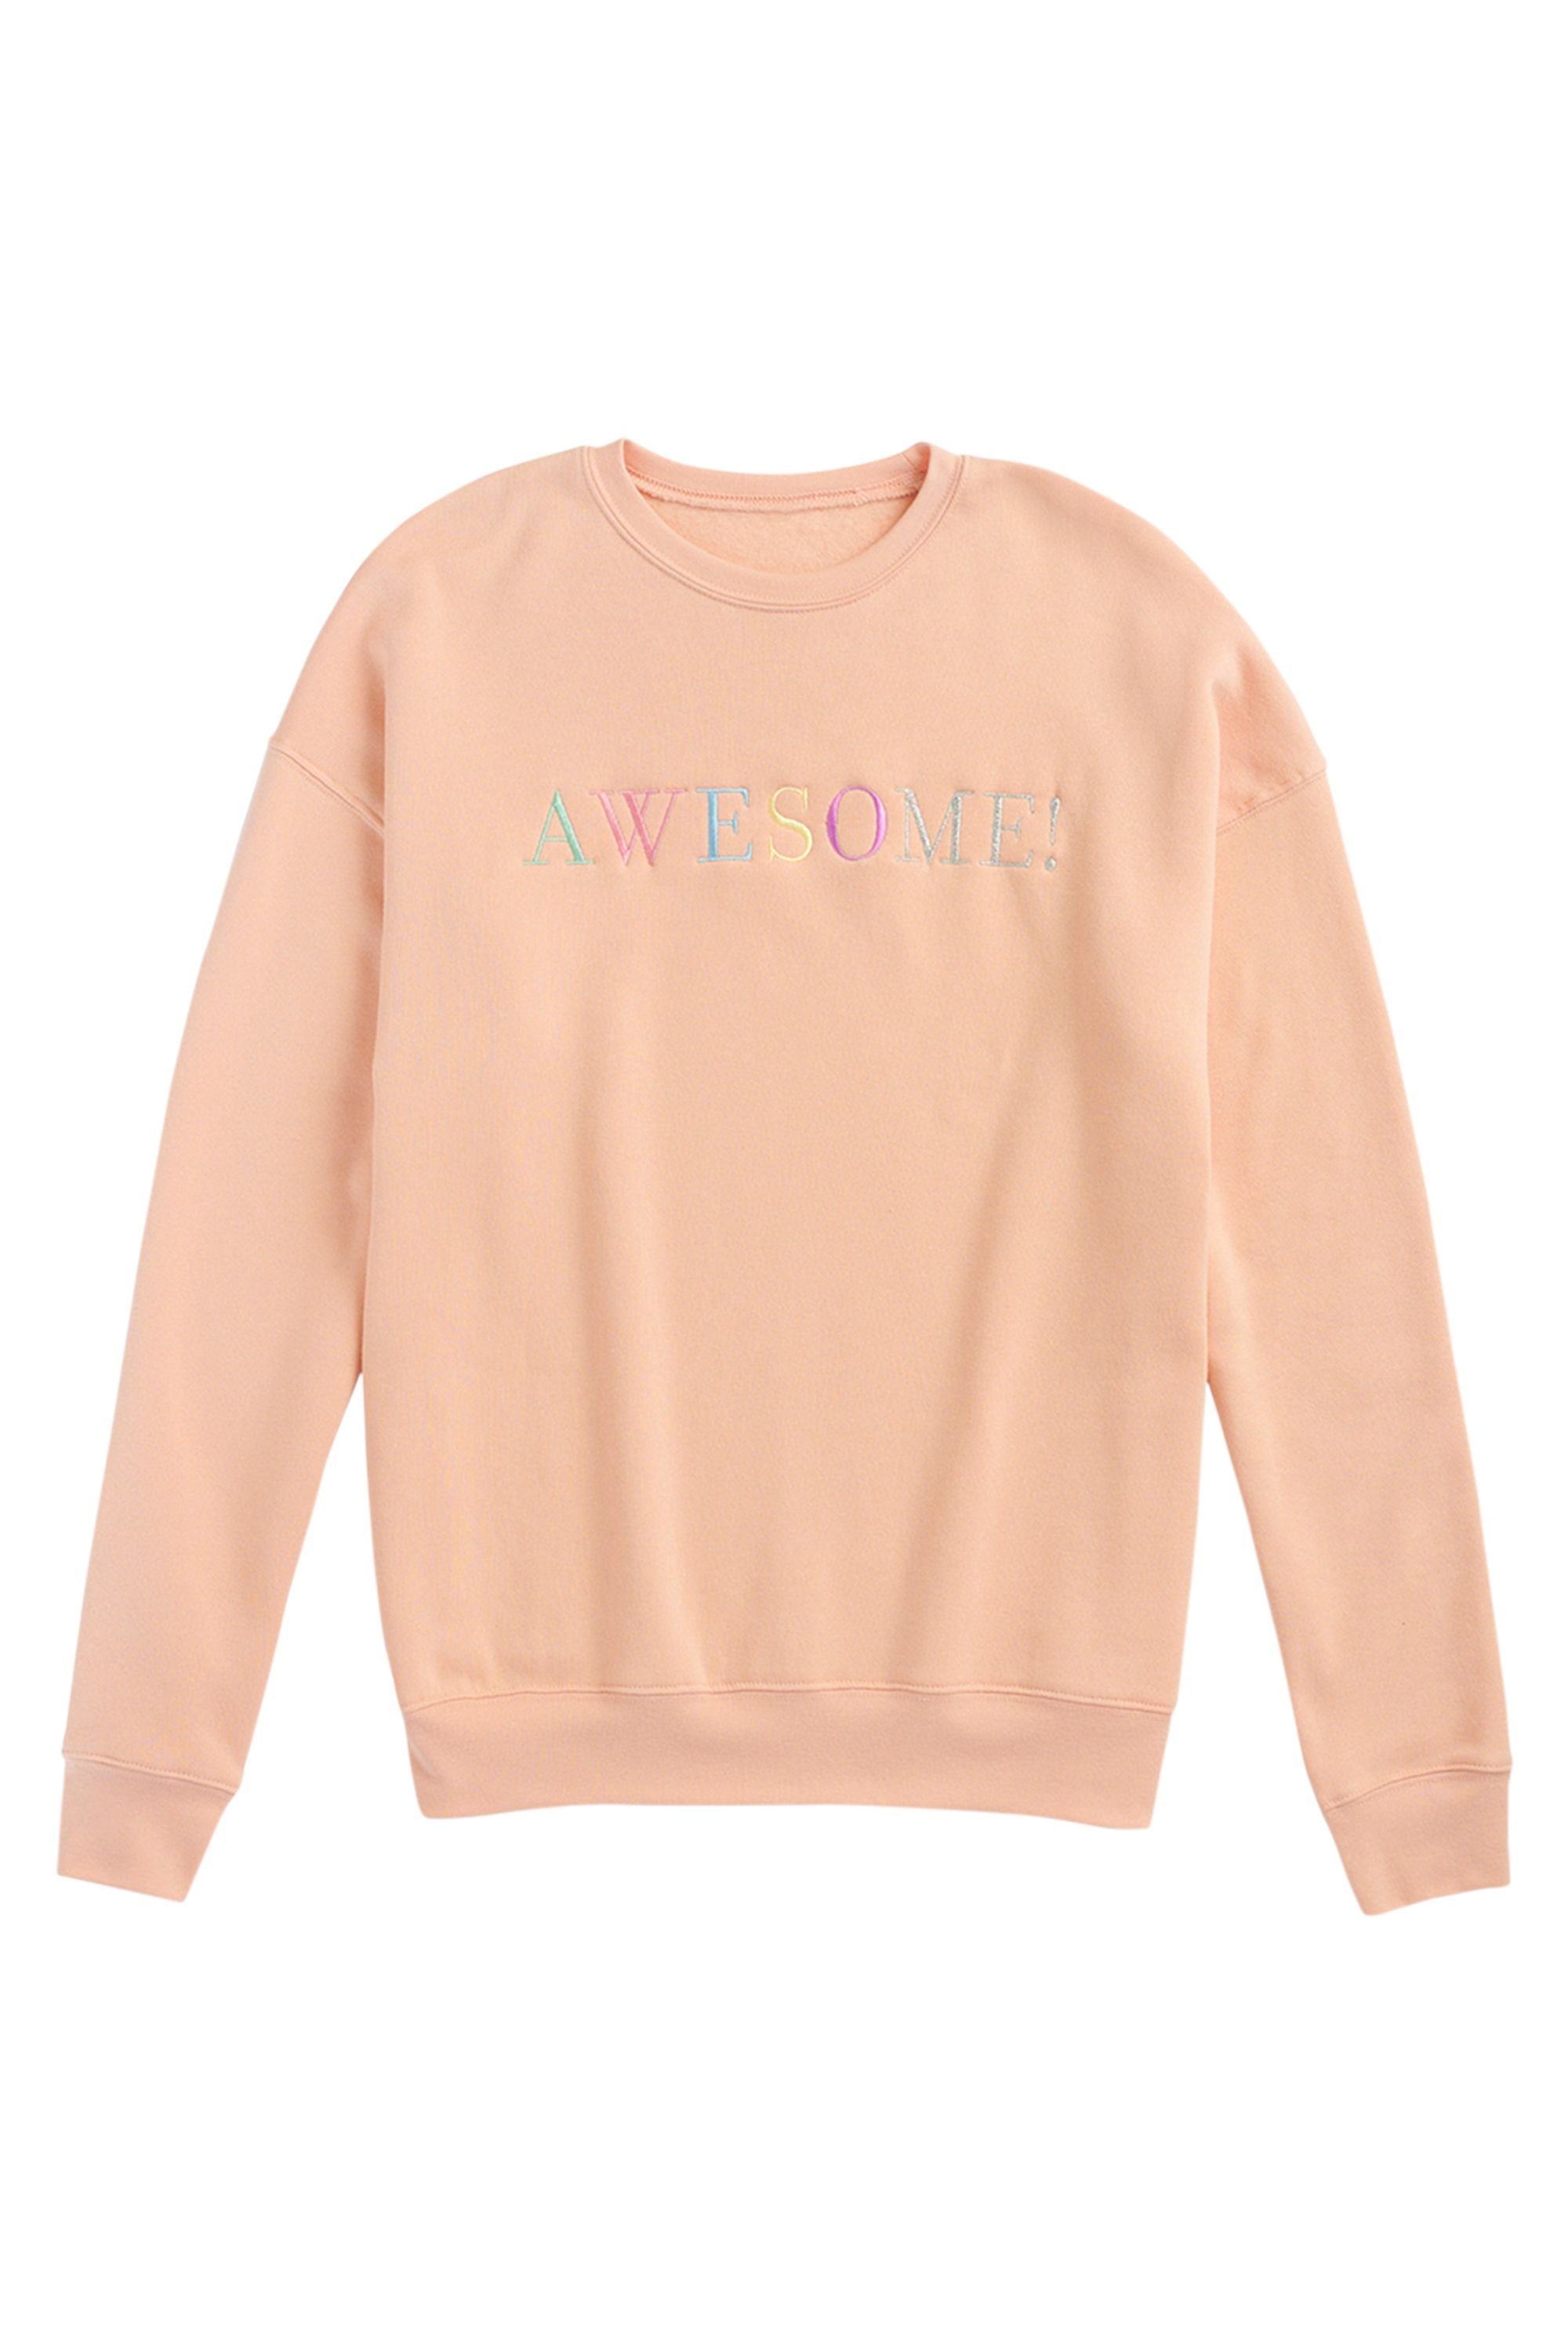 Taylor Swift S Me Merch Is Indeed Ready For Purchase